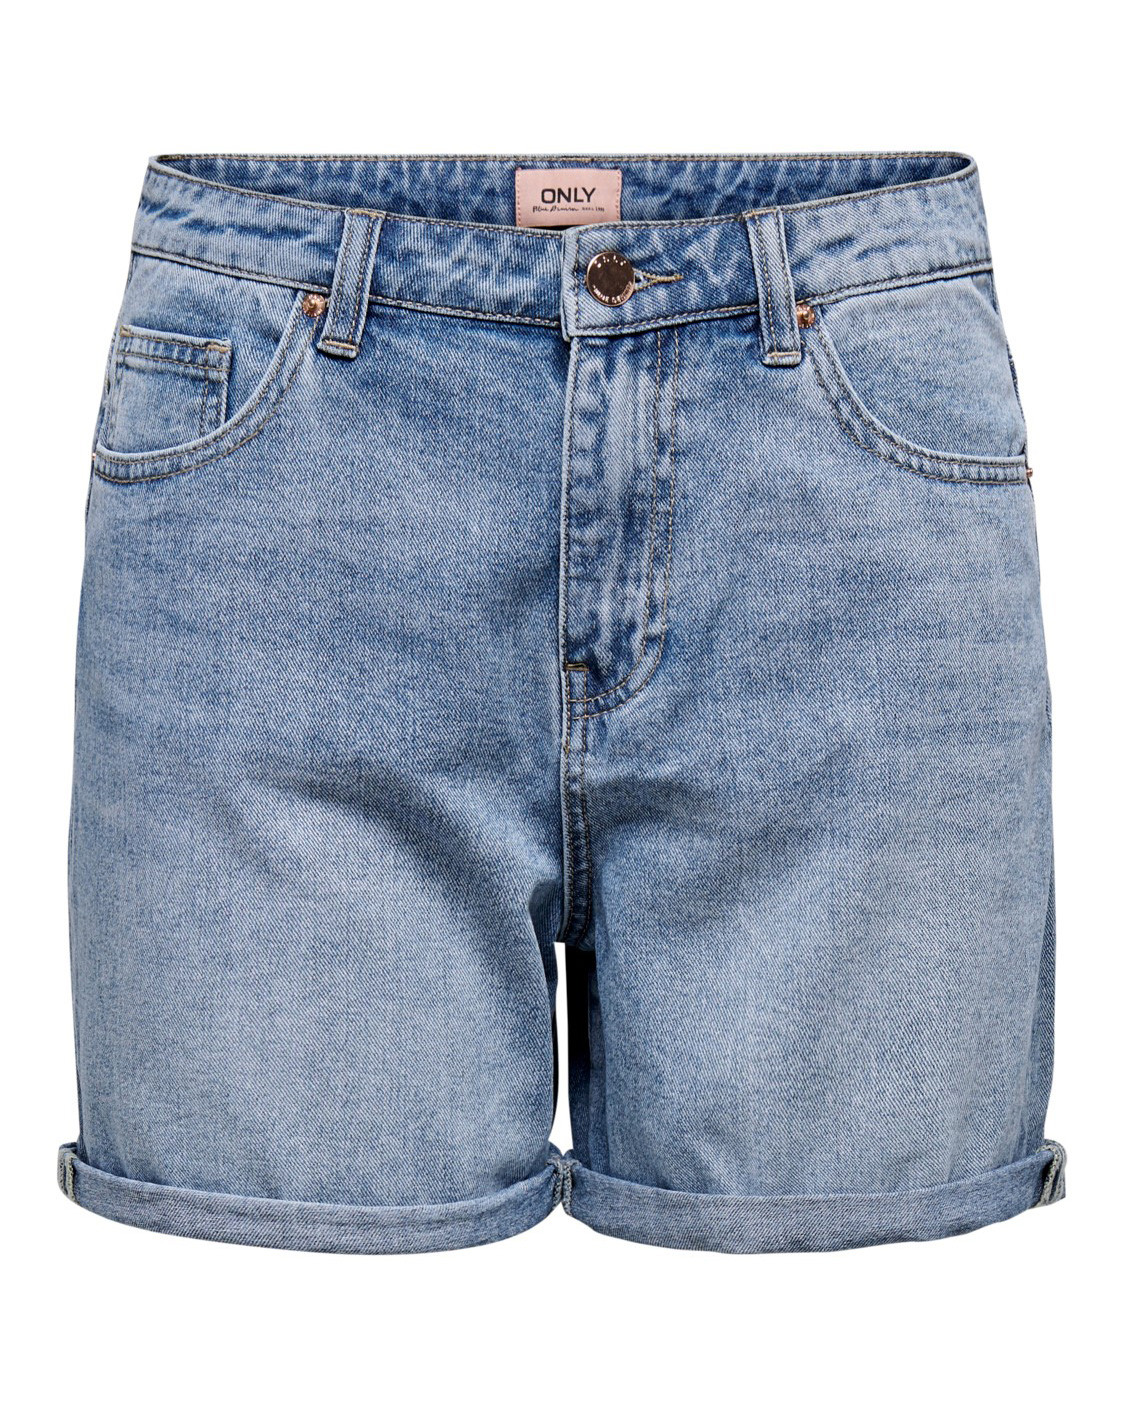 Marchio: Only; Genere: Donna; Tipologia: Shorts; …only